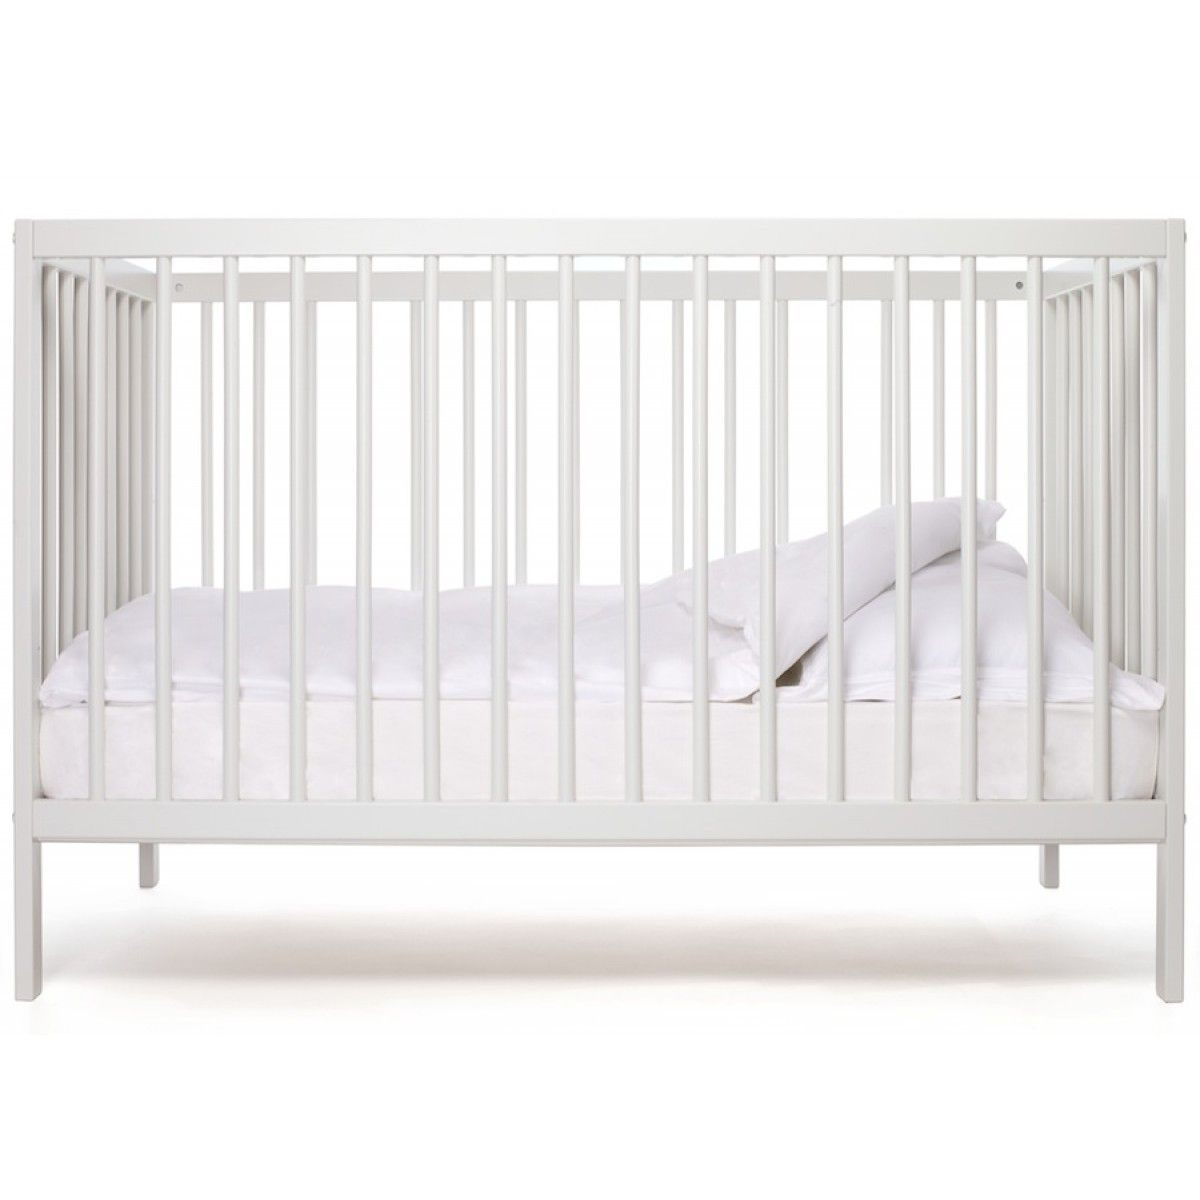 Lit A Barreau Bebe Charmant the Minimalist Baby Cot by Mokee &nbsp £79 95 Height Adjustable In